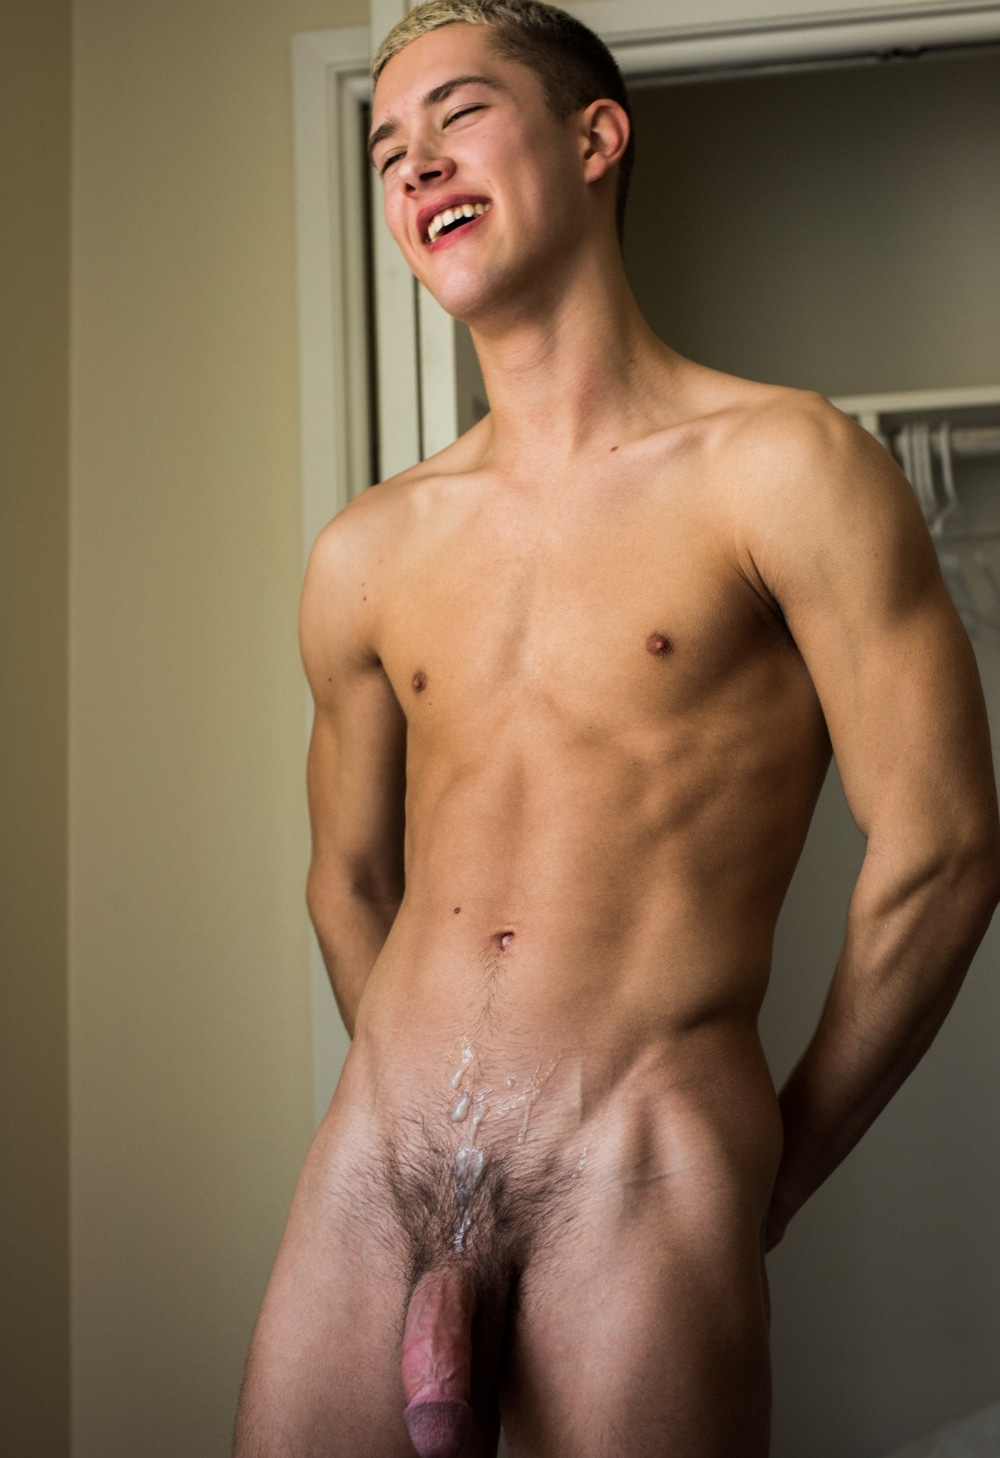 Gay porn star Sean Ford